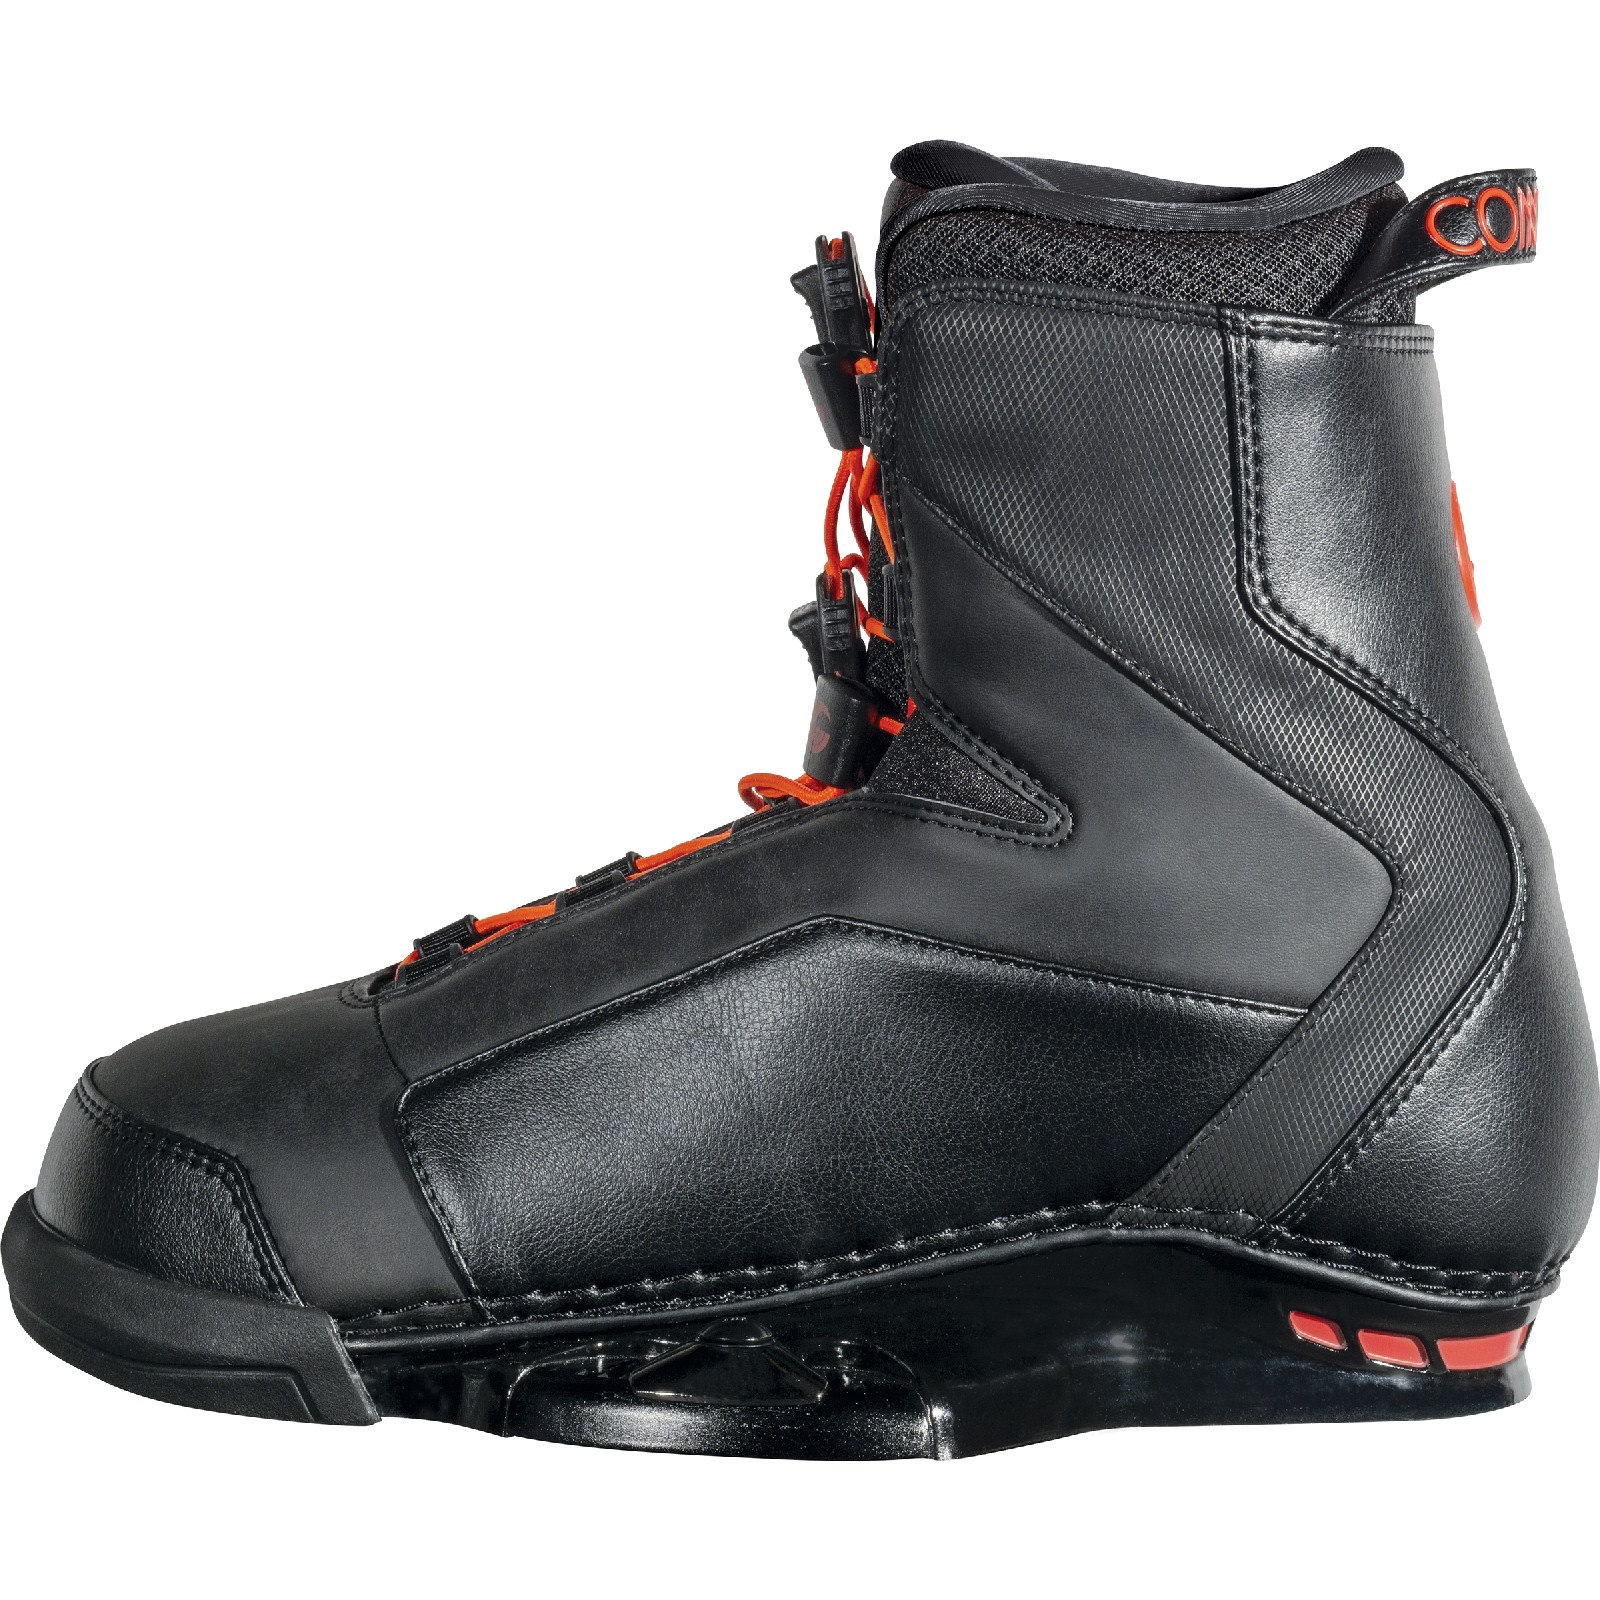 JT BOOT CONNELLY 2019